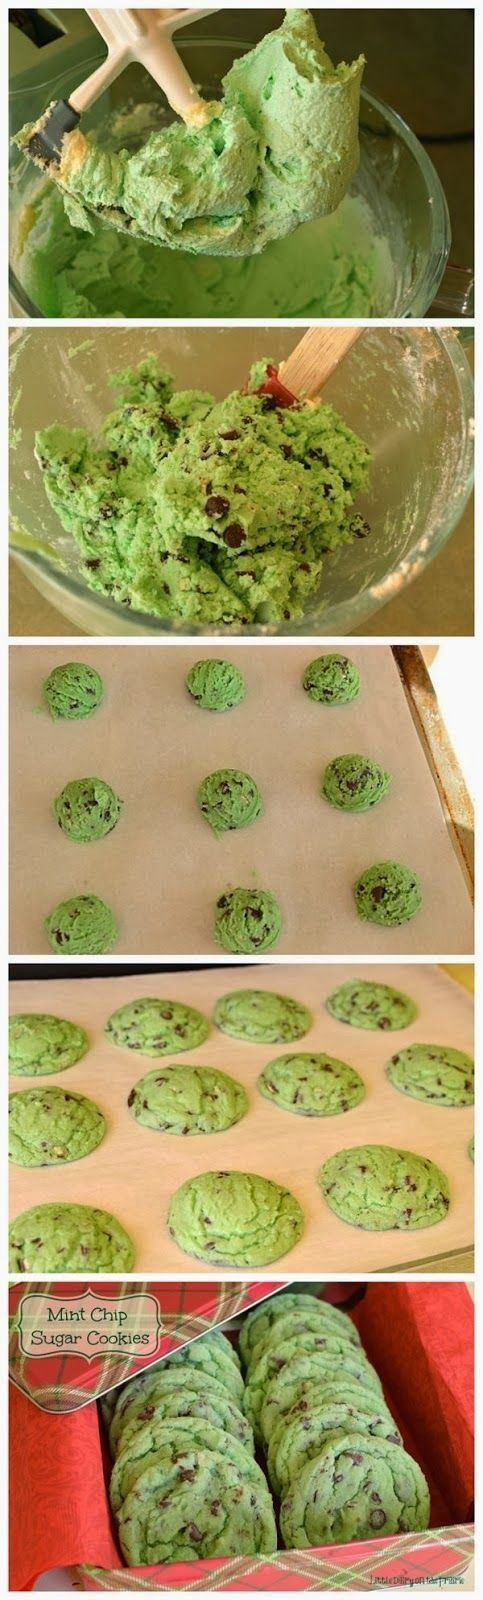 Mint Chip Sugar Cookies              Prep time   15 mins       Cook time   1 hour       Total time   1 hour 15 mins            Me...